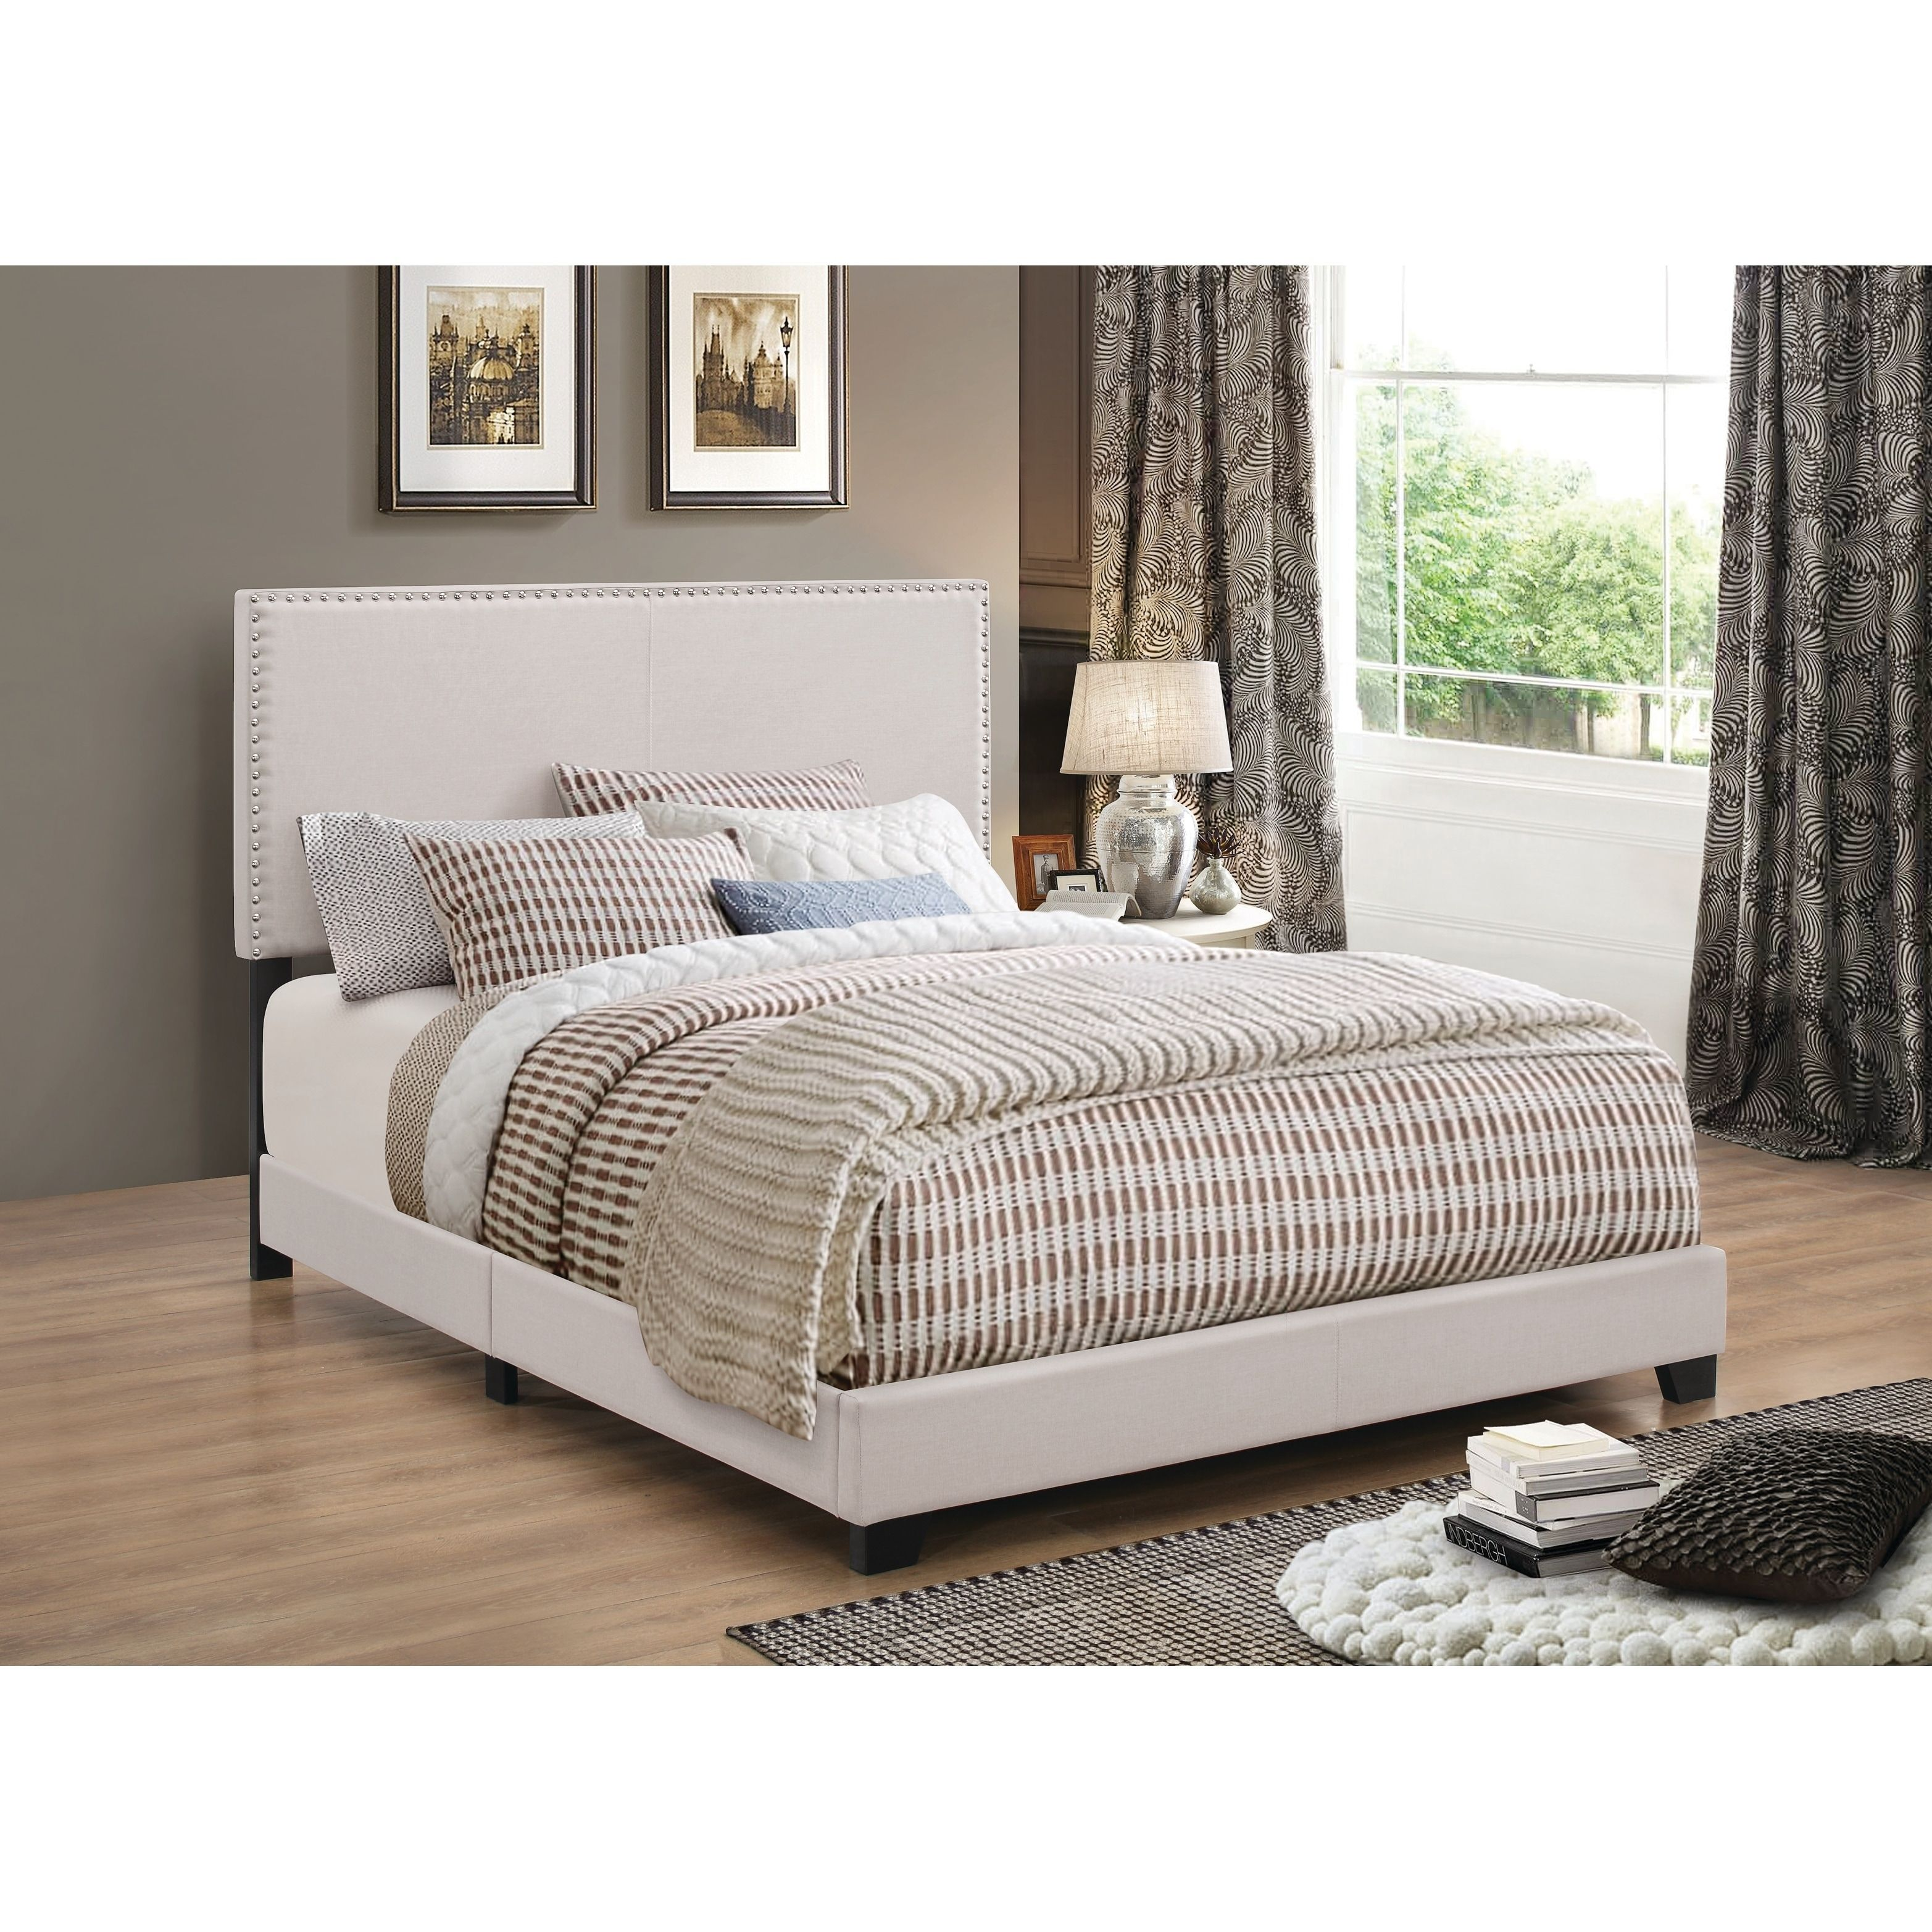 Coaster Boyd Upholstered Bed Ivory Full Double White Products